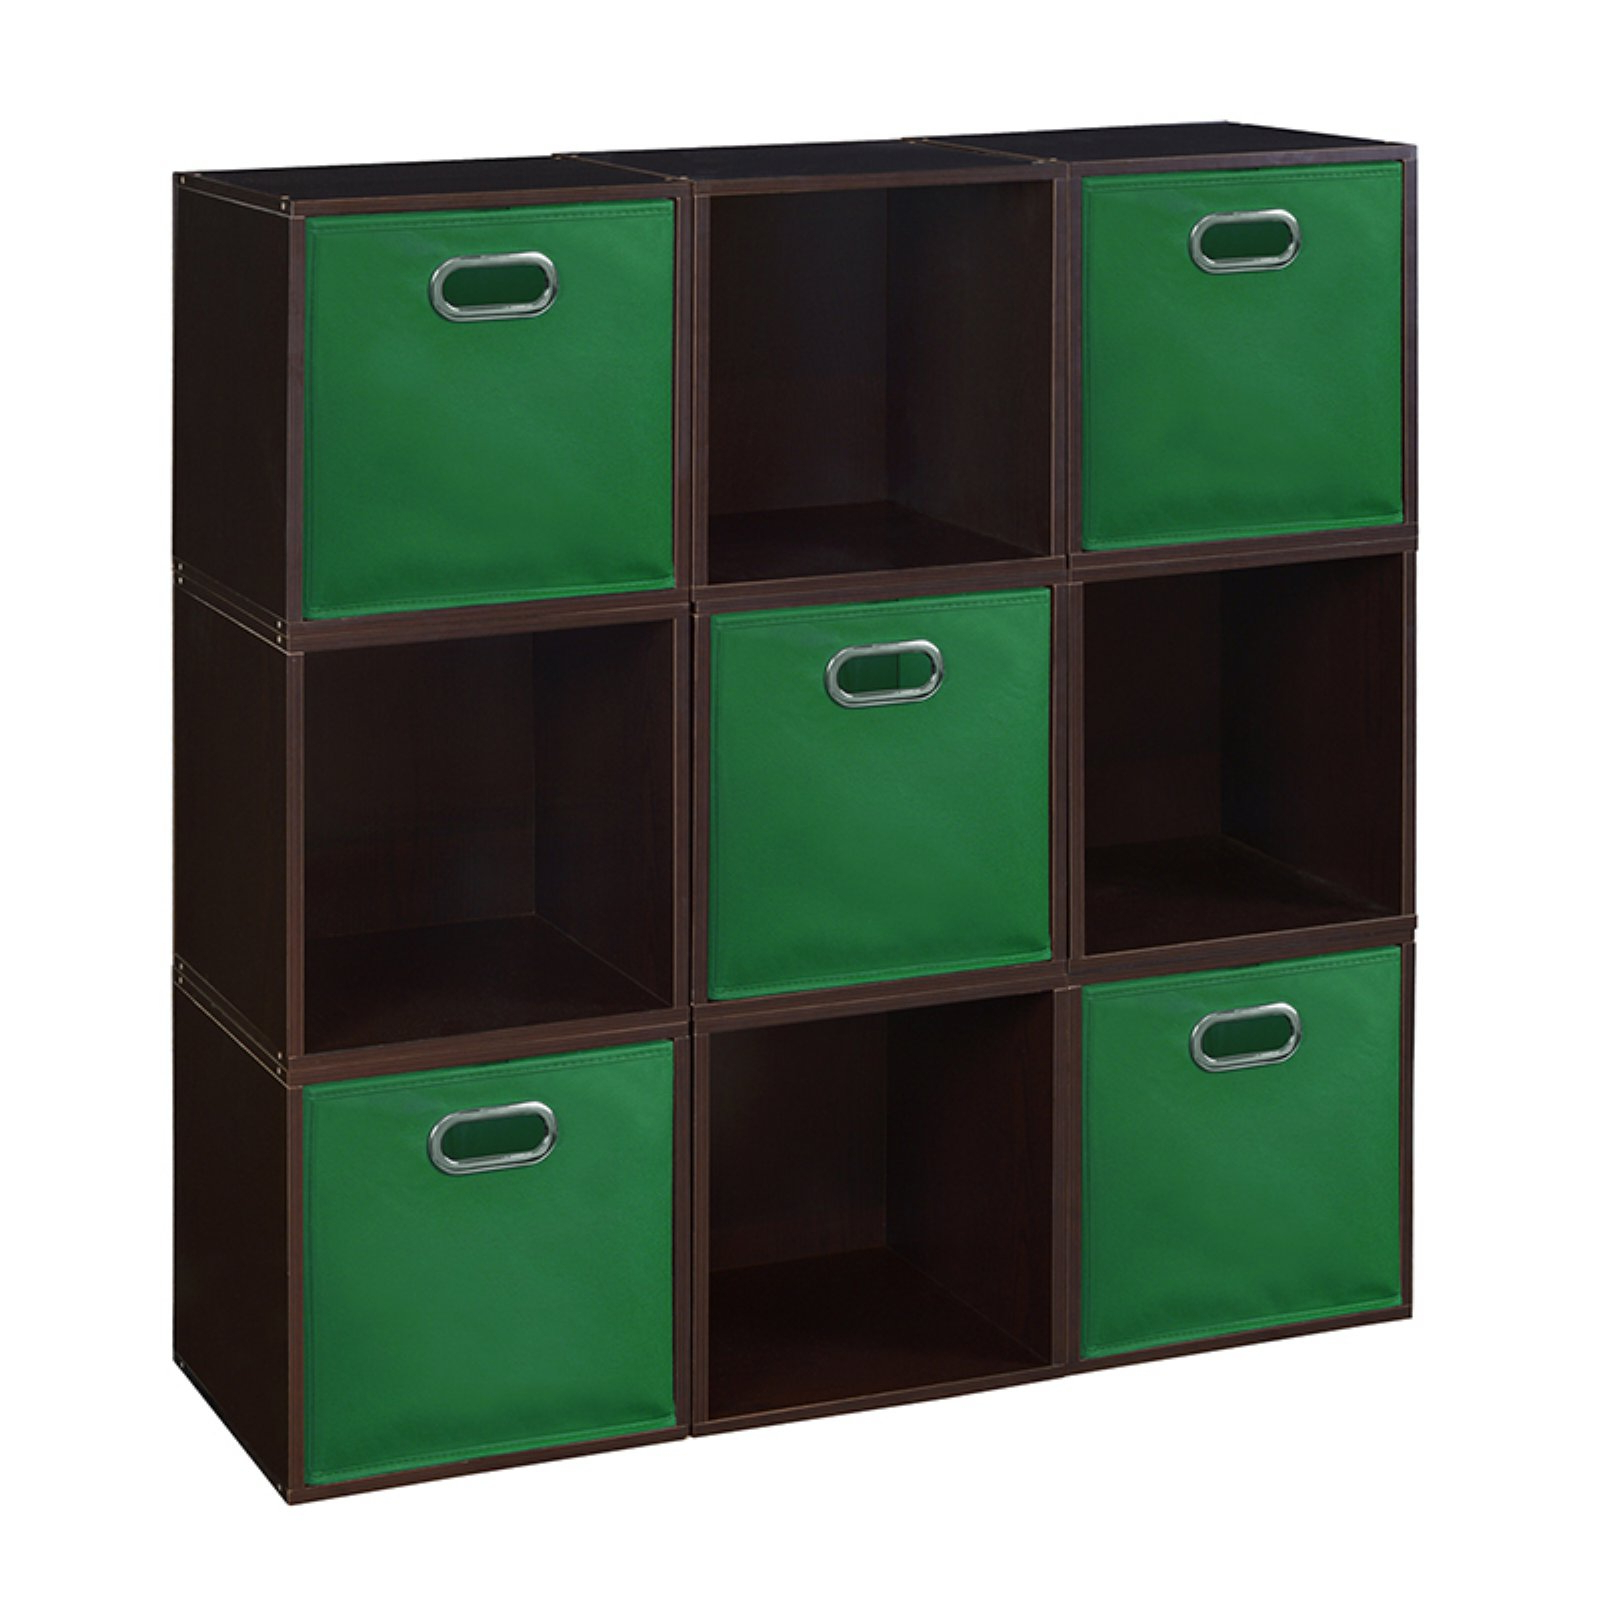 Regency Niche Cubo Nine Cube Storage Unit With Five Foldable Pertaining To Recent Chastain Storage Cube Unit Bookcases (View 5 of 20)